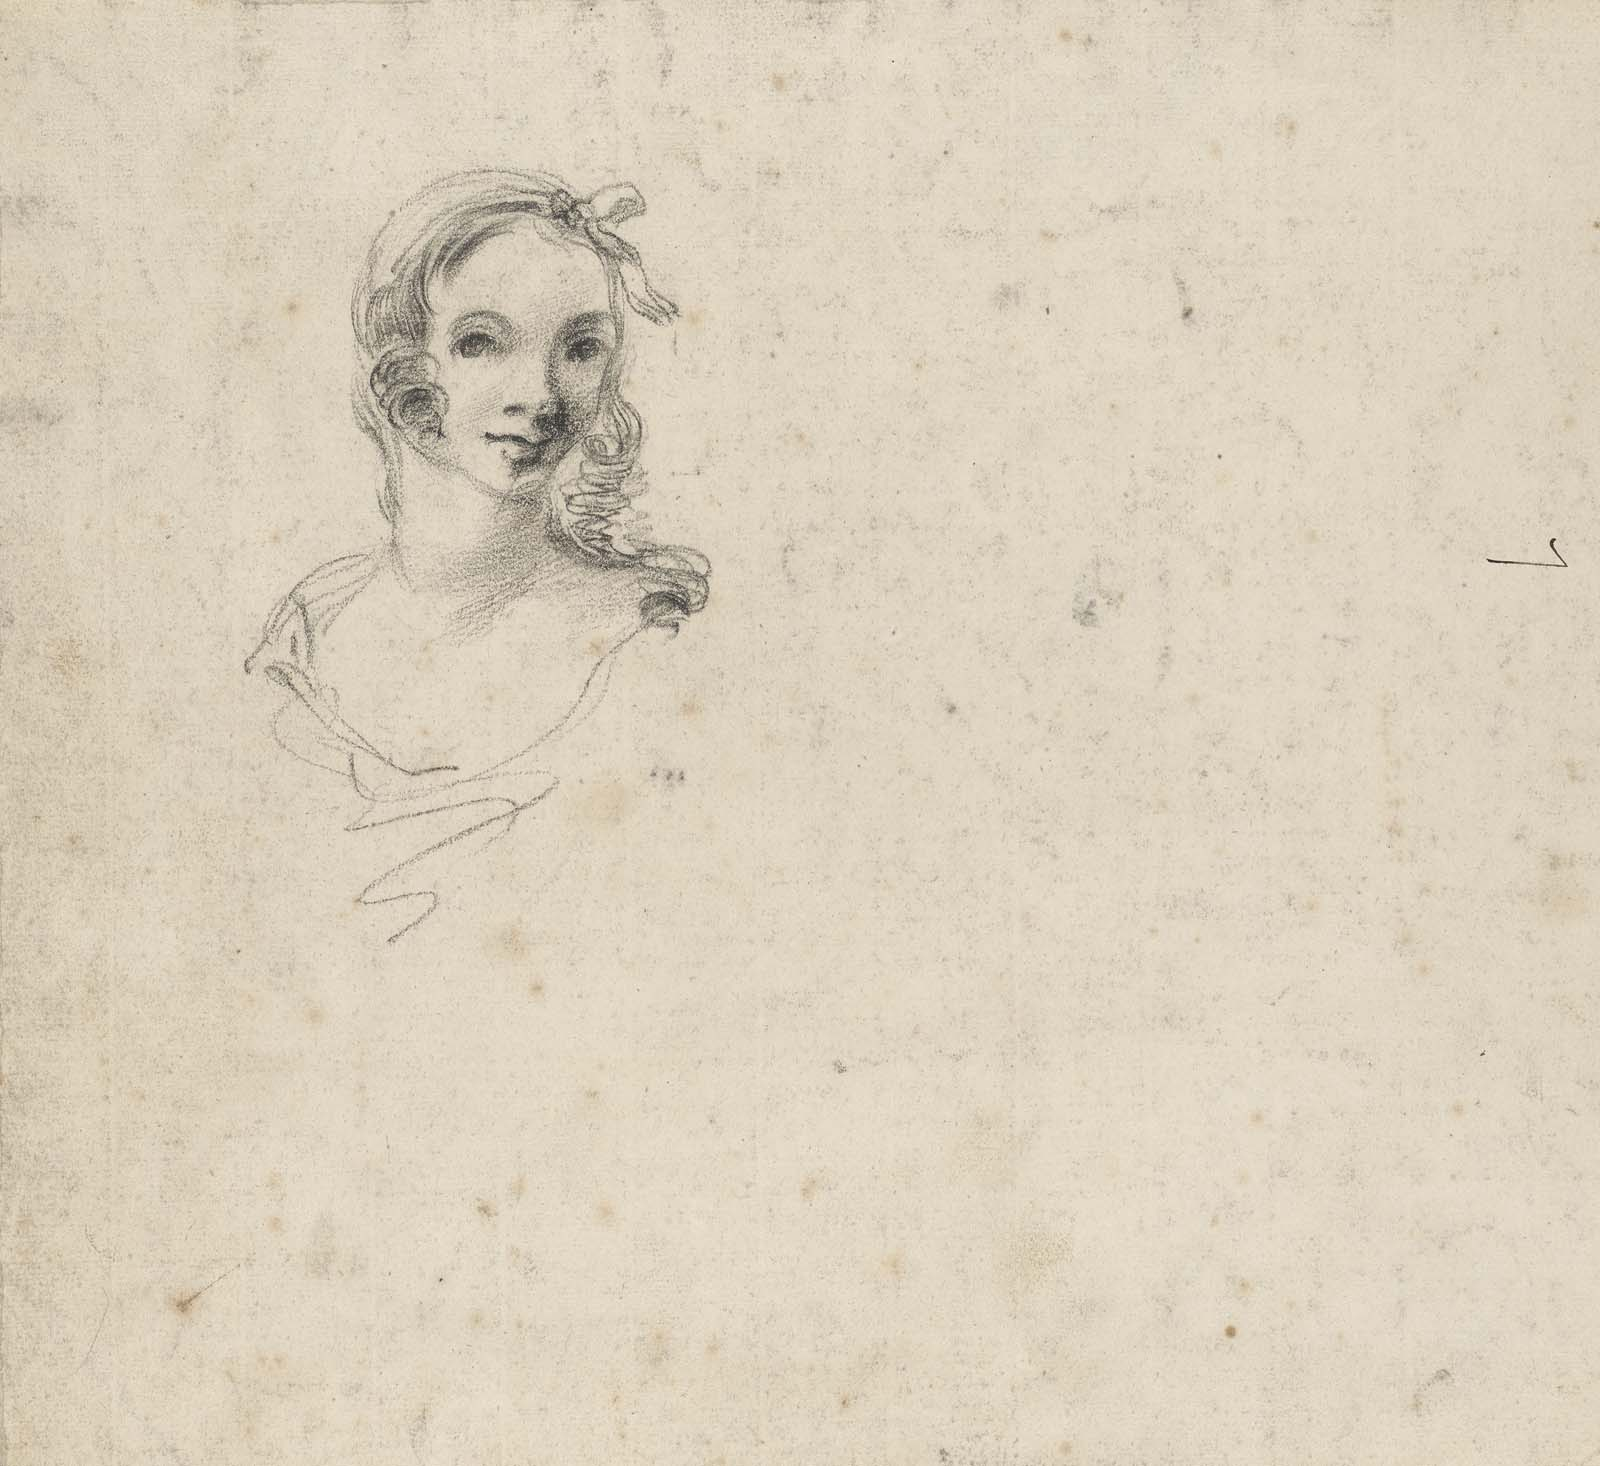 small pencil sketch of a young woman's head and shoulders